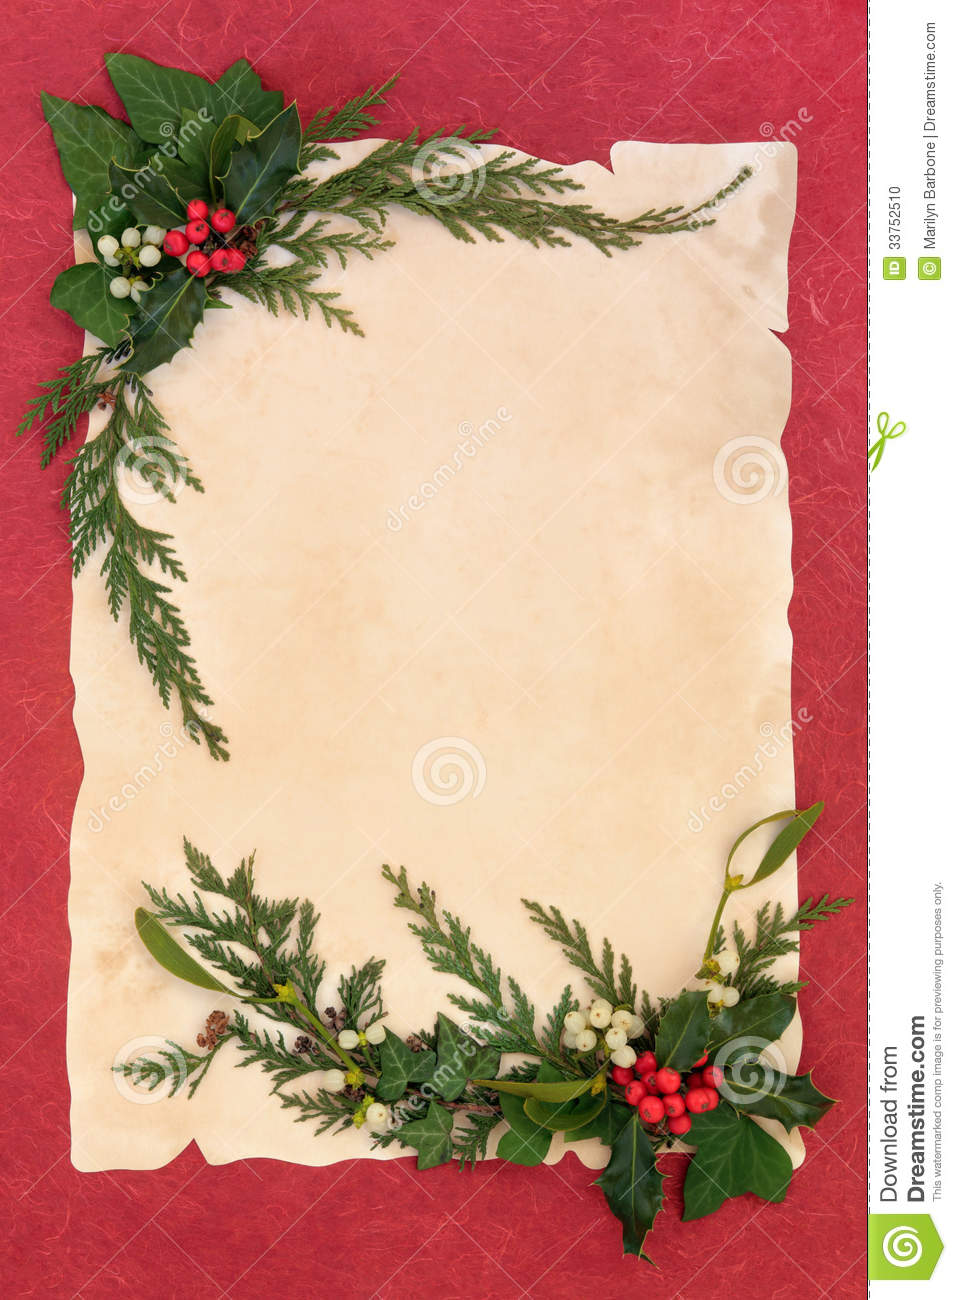 Holly And Mistletoe Border Stock Photo Image Of Paper